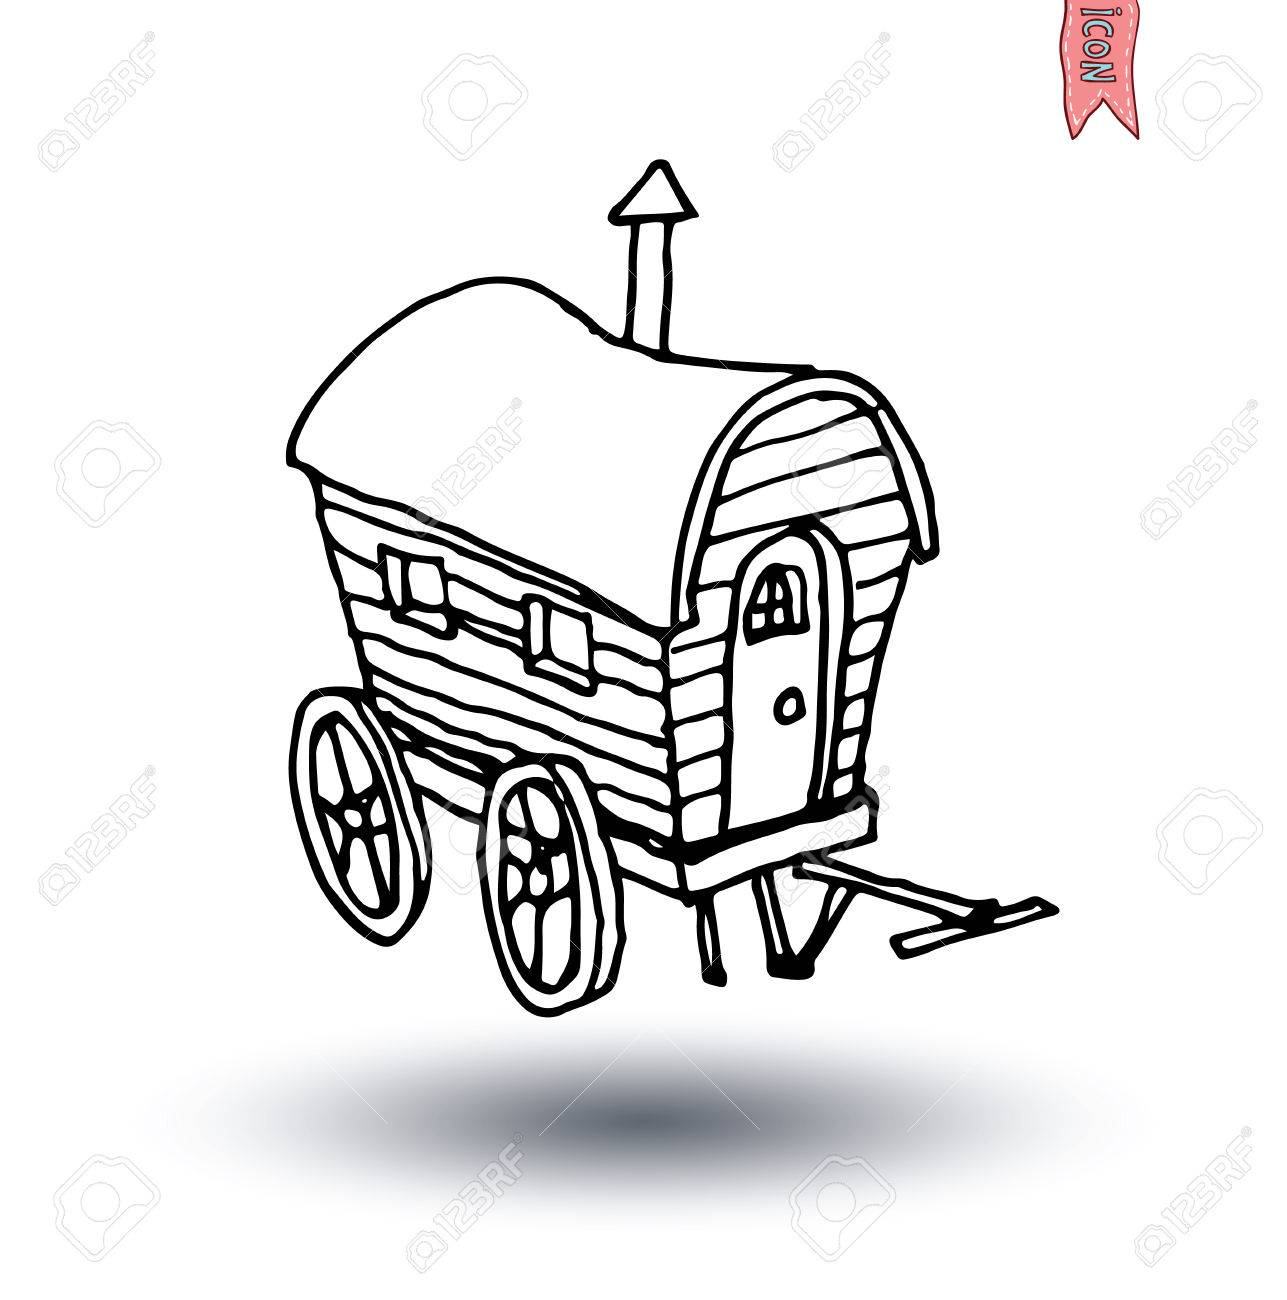 1287x1300 Horse Carriage Wagon Icon, Vector Illustration. Royalty Free